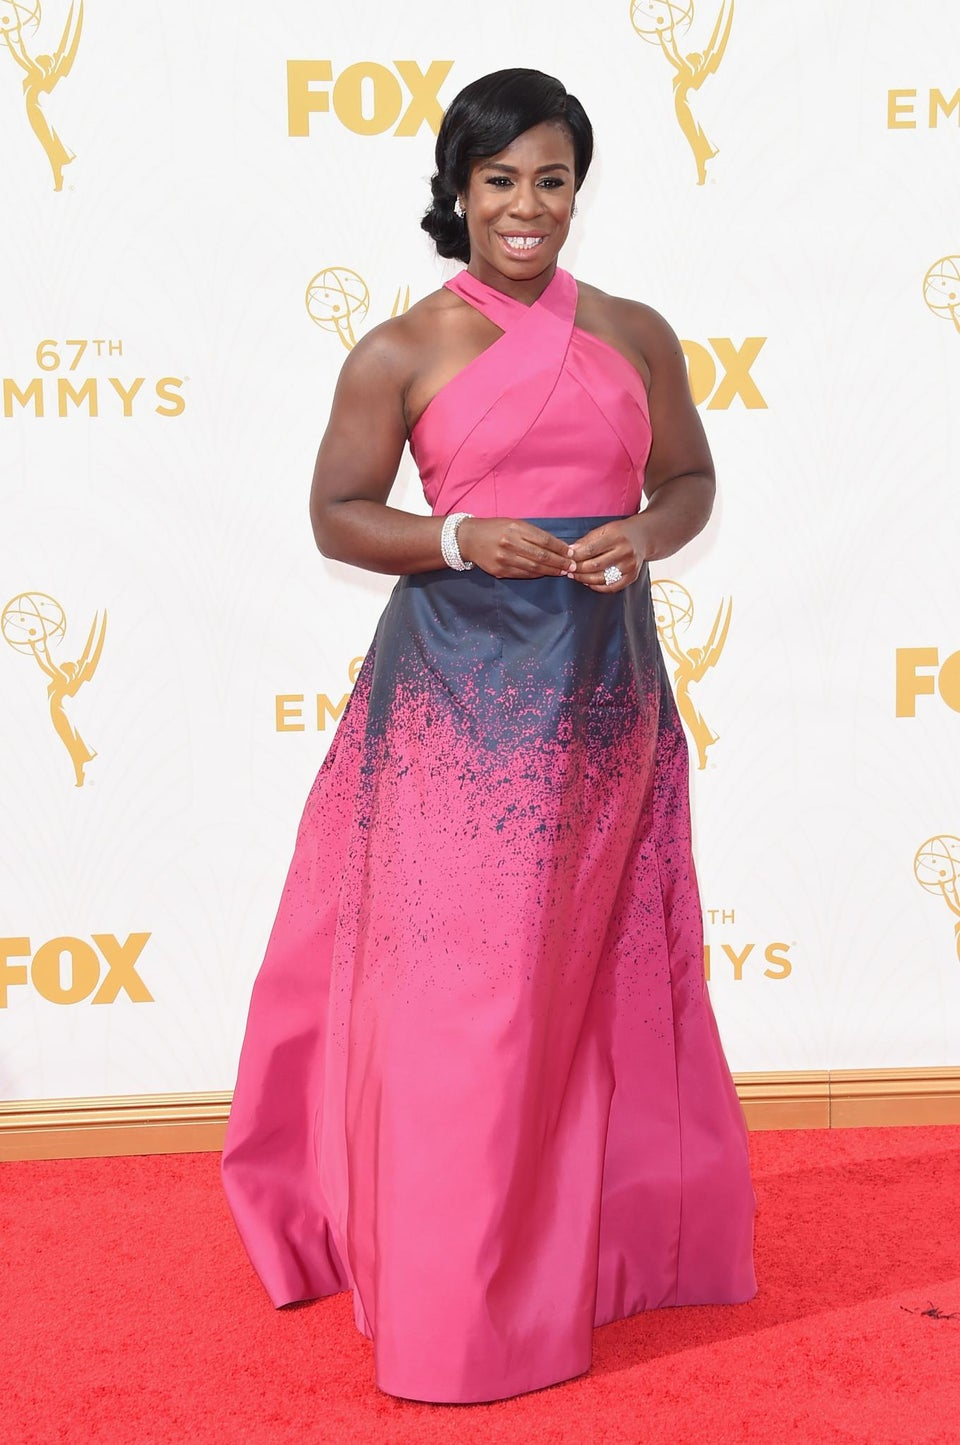 Uzo Aduba Wins Emmy for Best Supporting Actress in a Drama